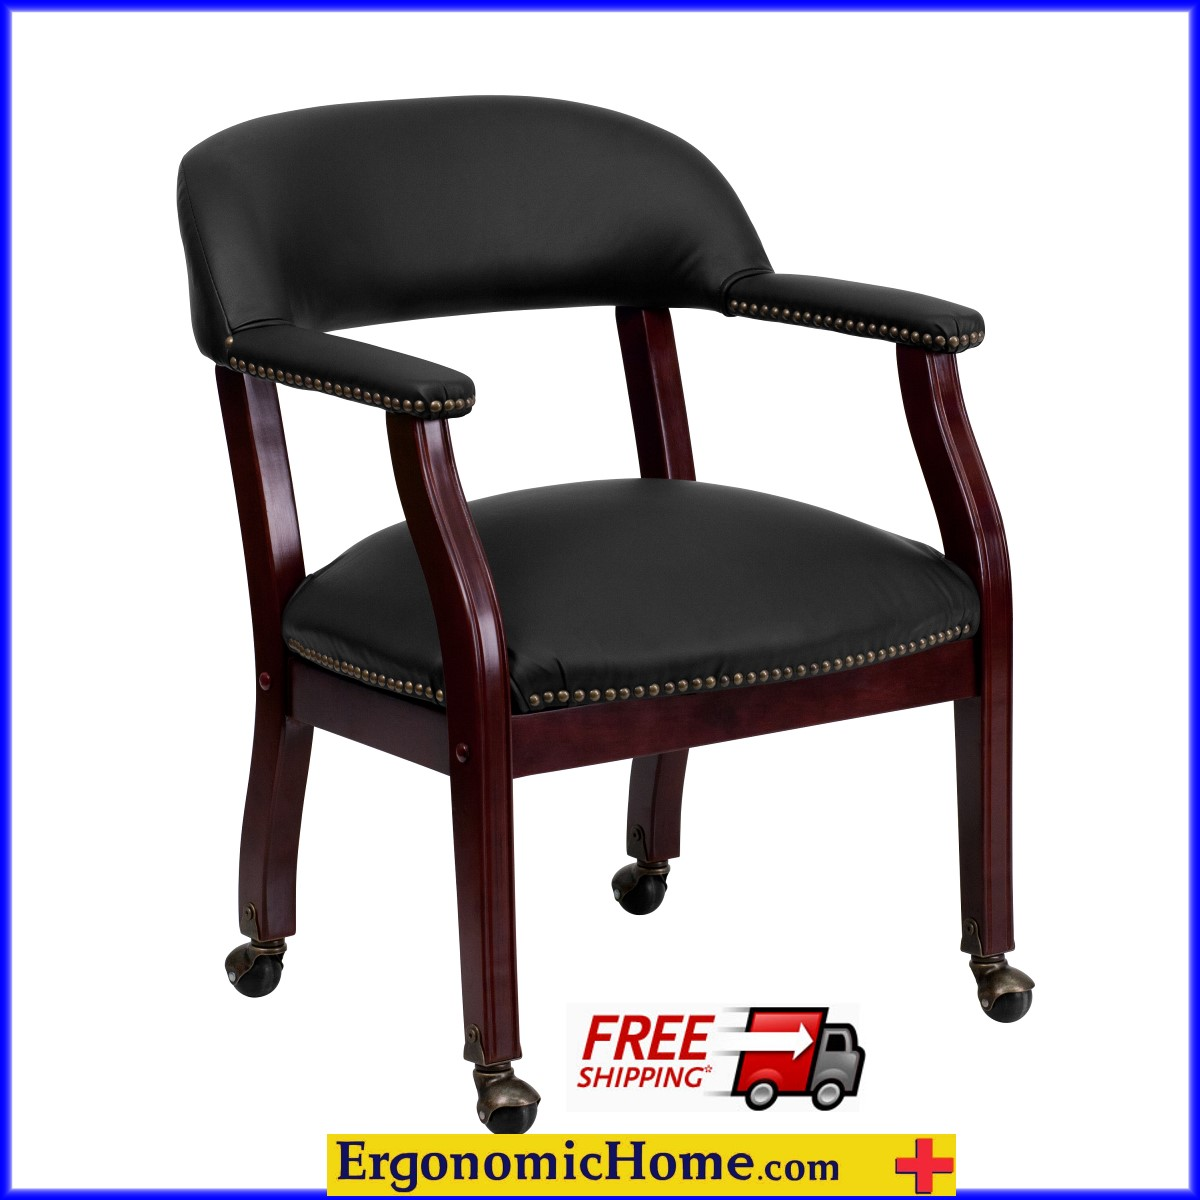 <font color=#c60>Save 50% w/Free Shipping!</font> Black Top Grain Leather Conference Chair with Casters B-Z100-LF-0005-BK-LEA-GG <font color=#c60>Read More ... </font>